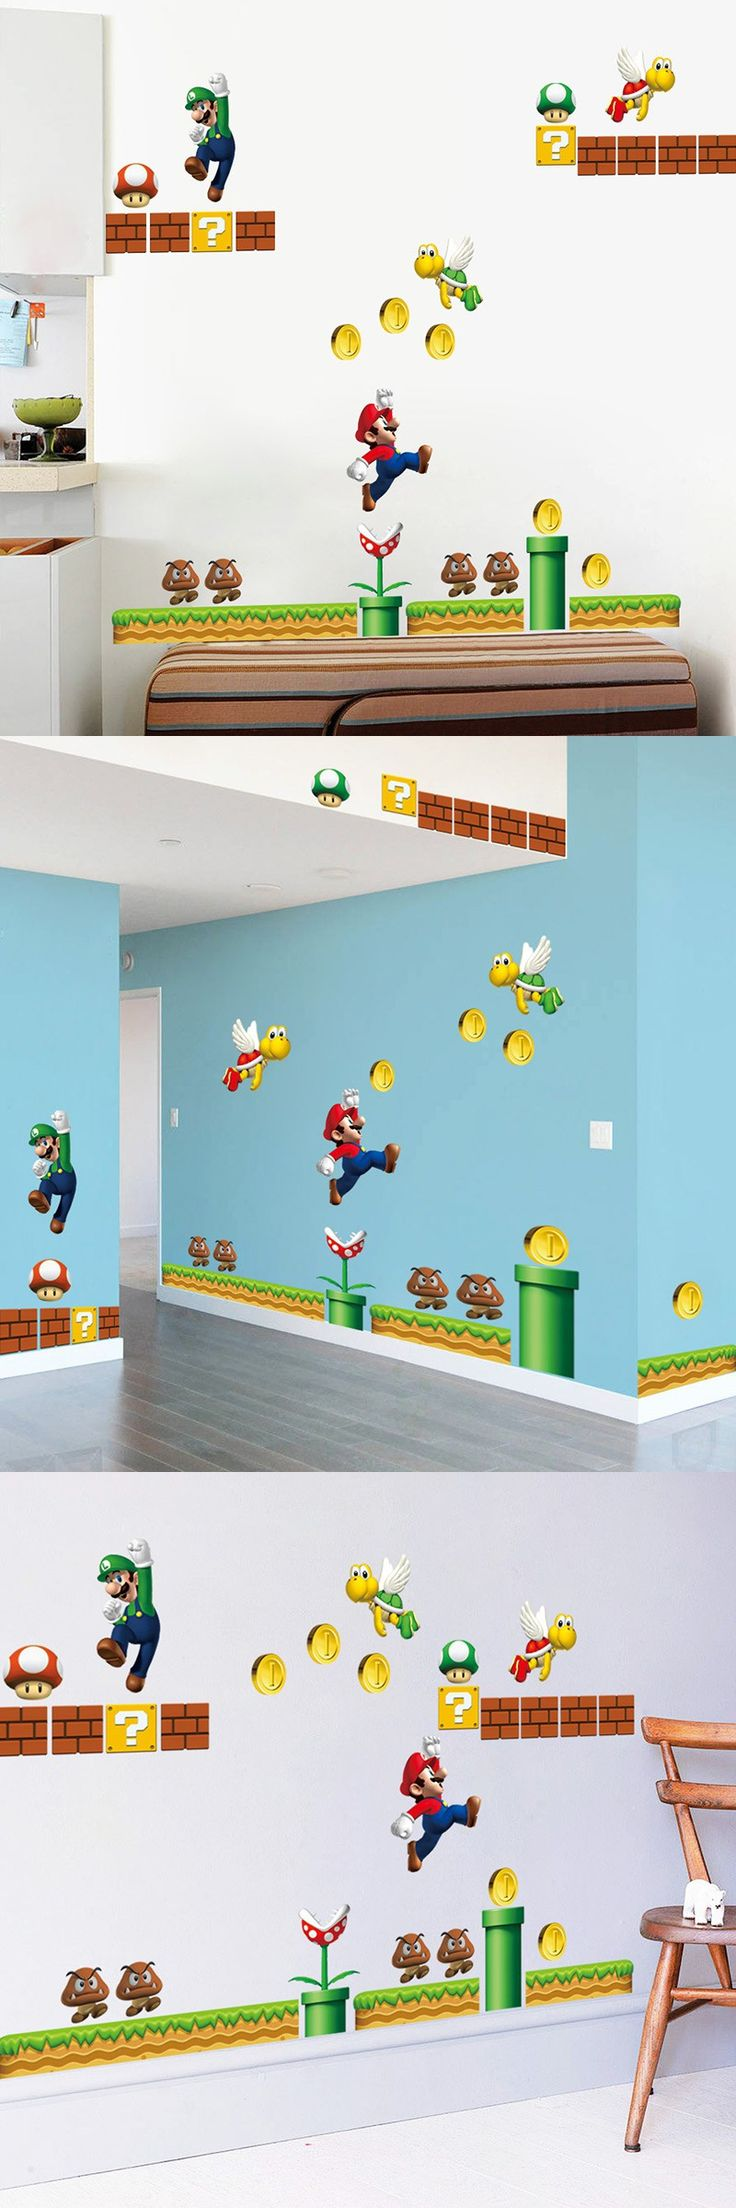 Home supermario games supermario wallpapers - Creative Home Decor 3d Wall Stickers Cartoon Game Star